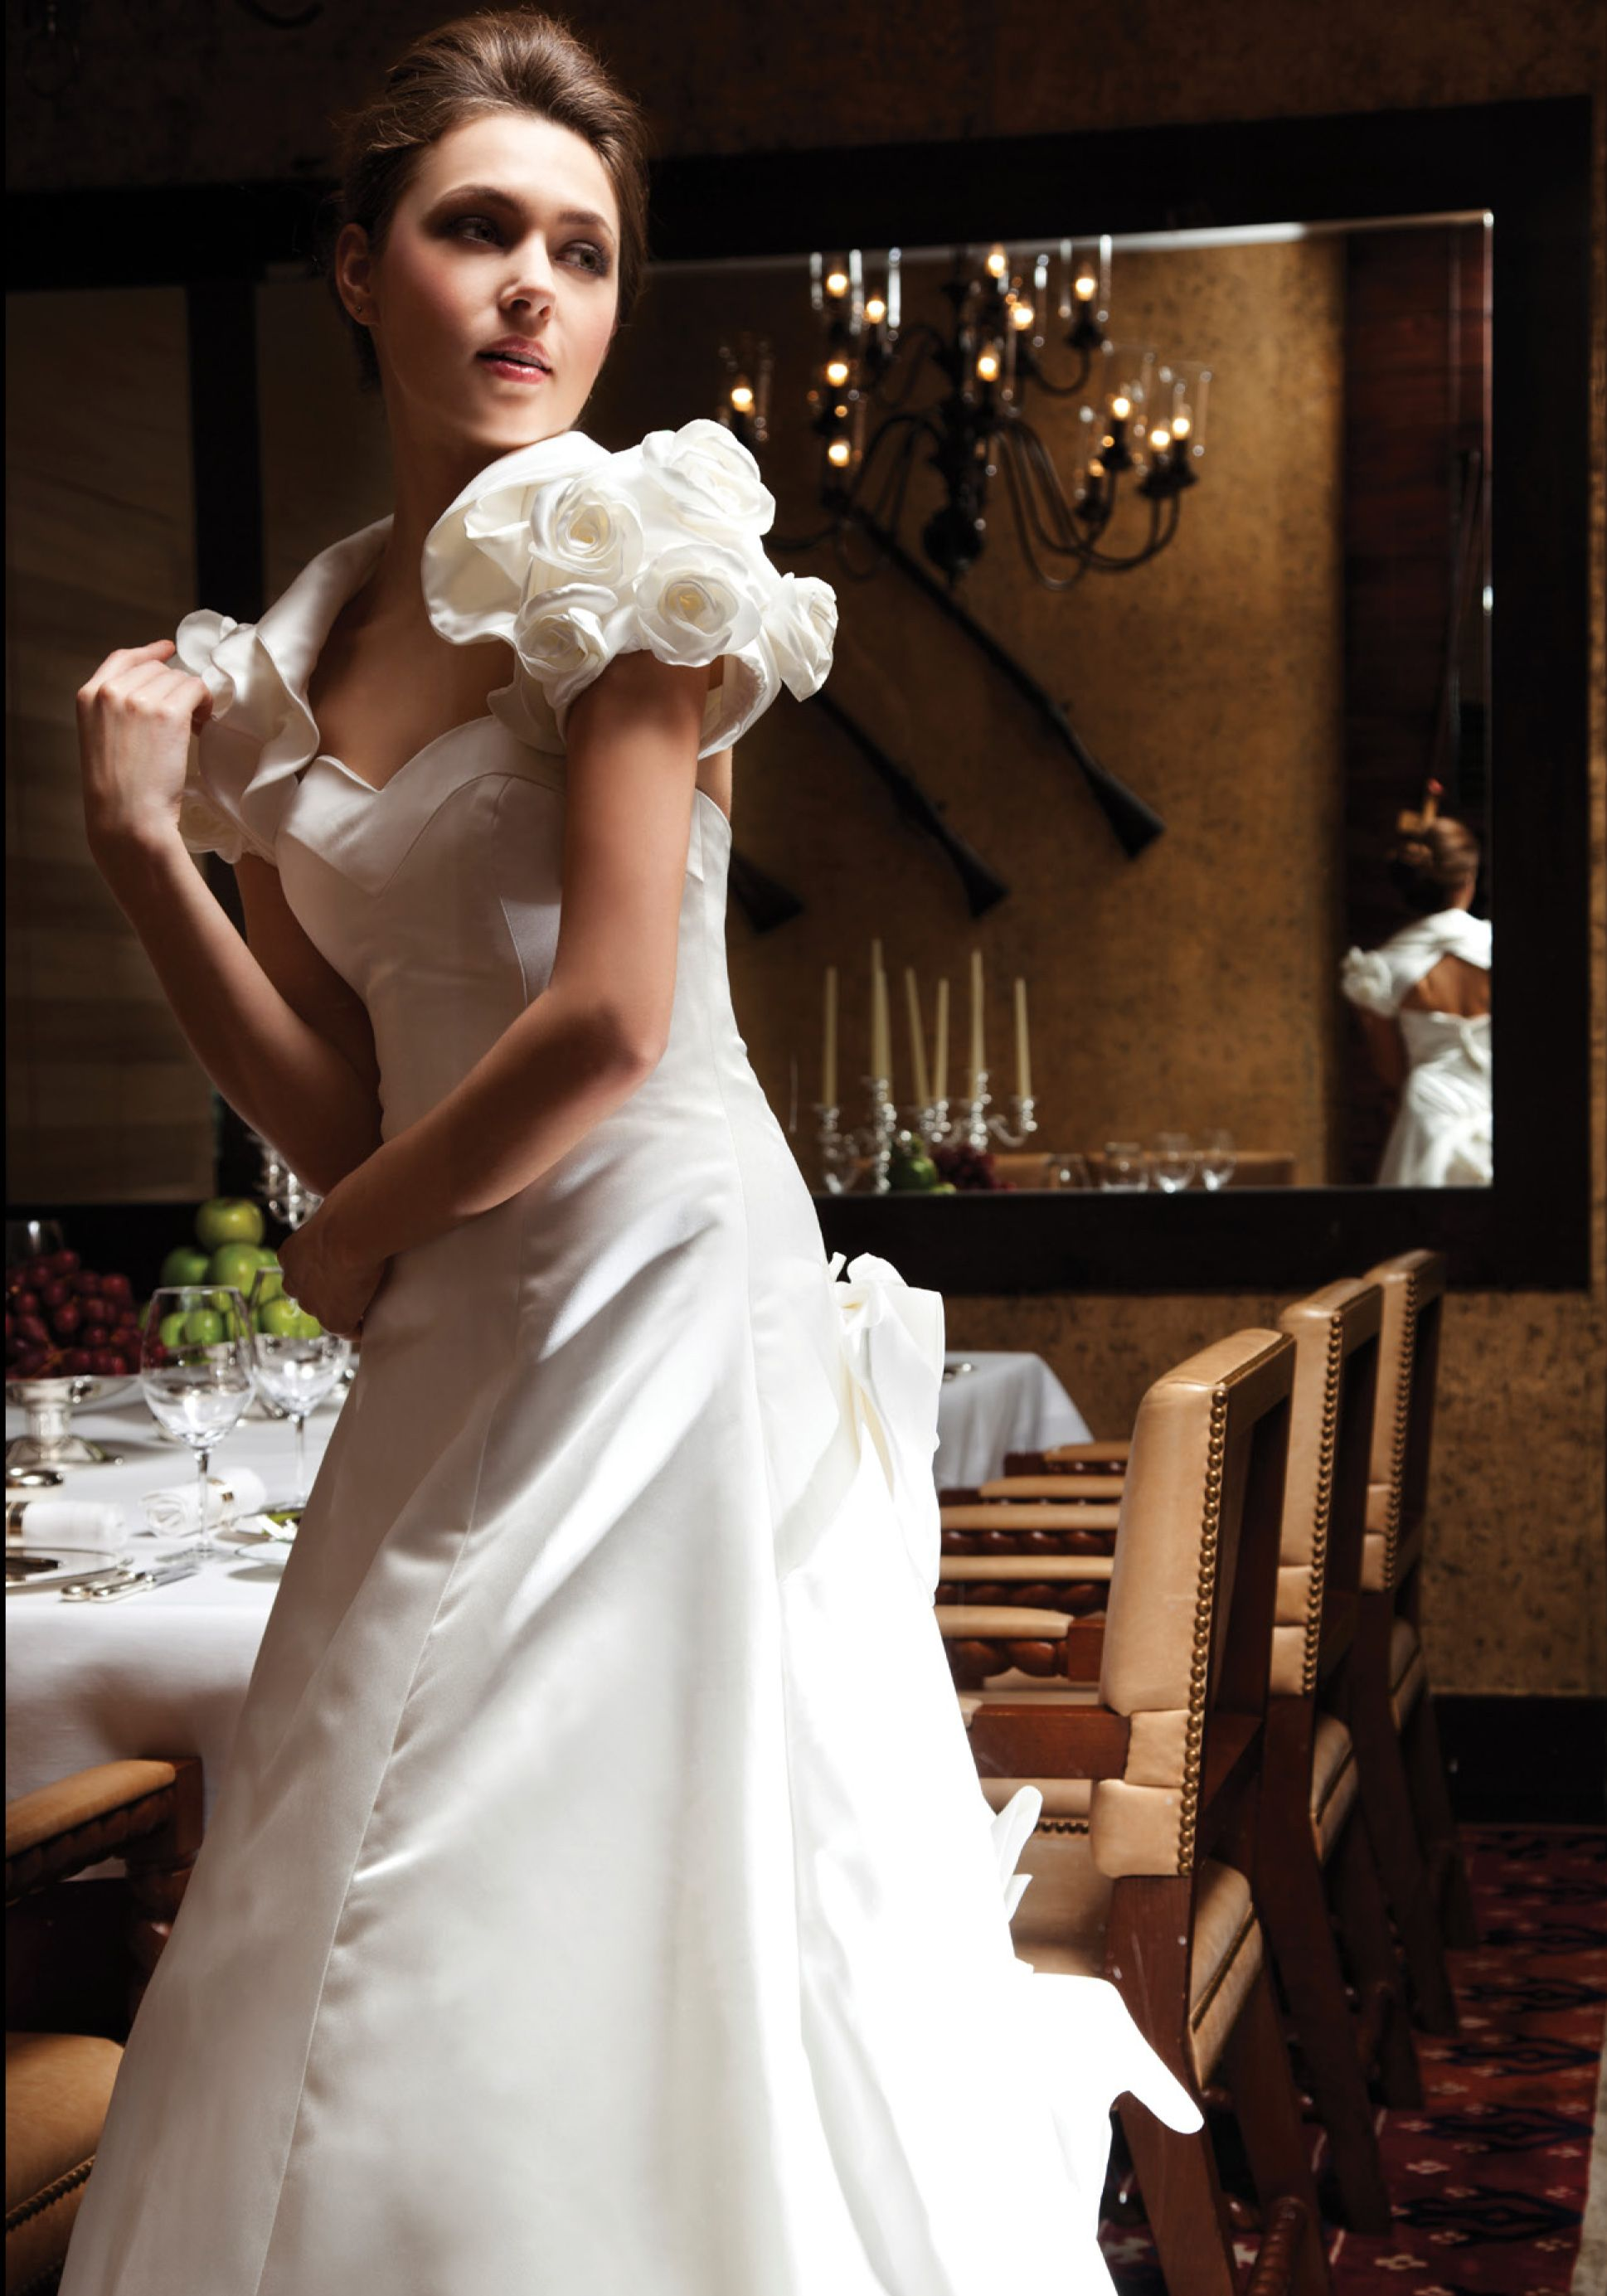 My Photography Work Woman Fashion On All About Wedding Magazine Http